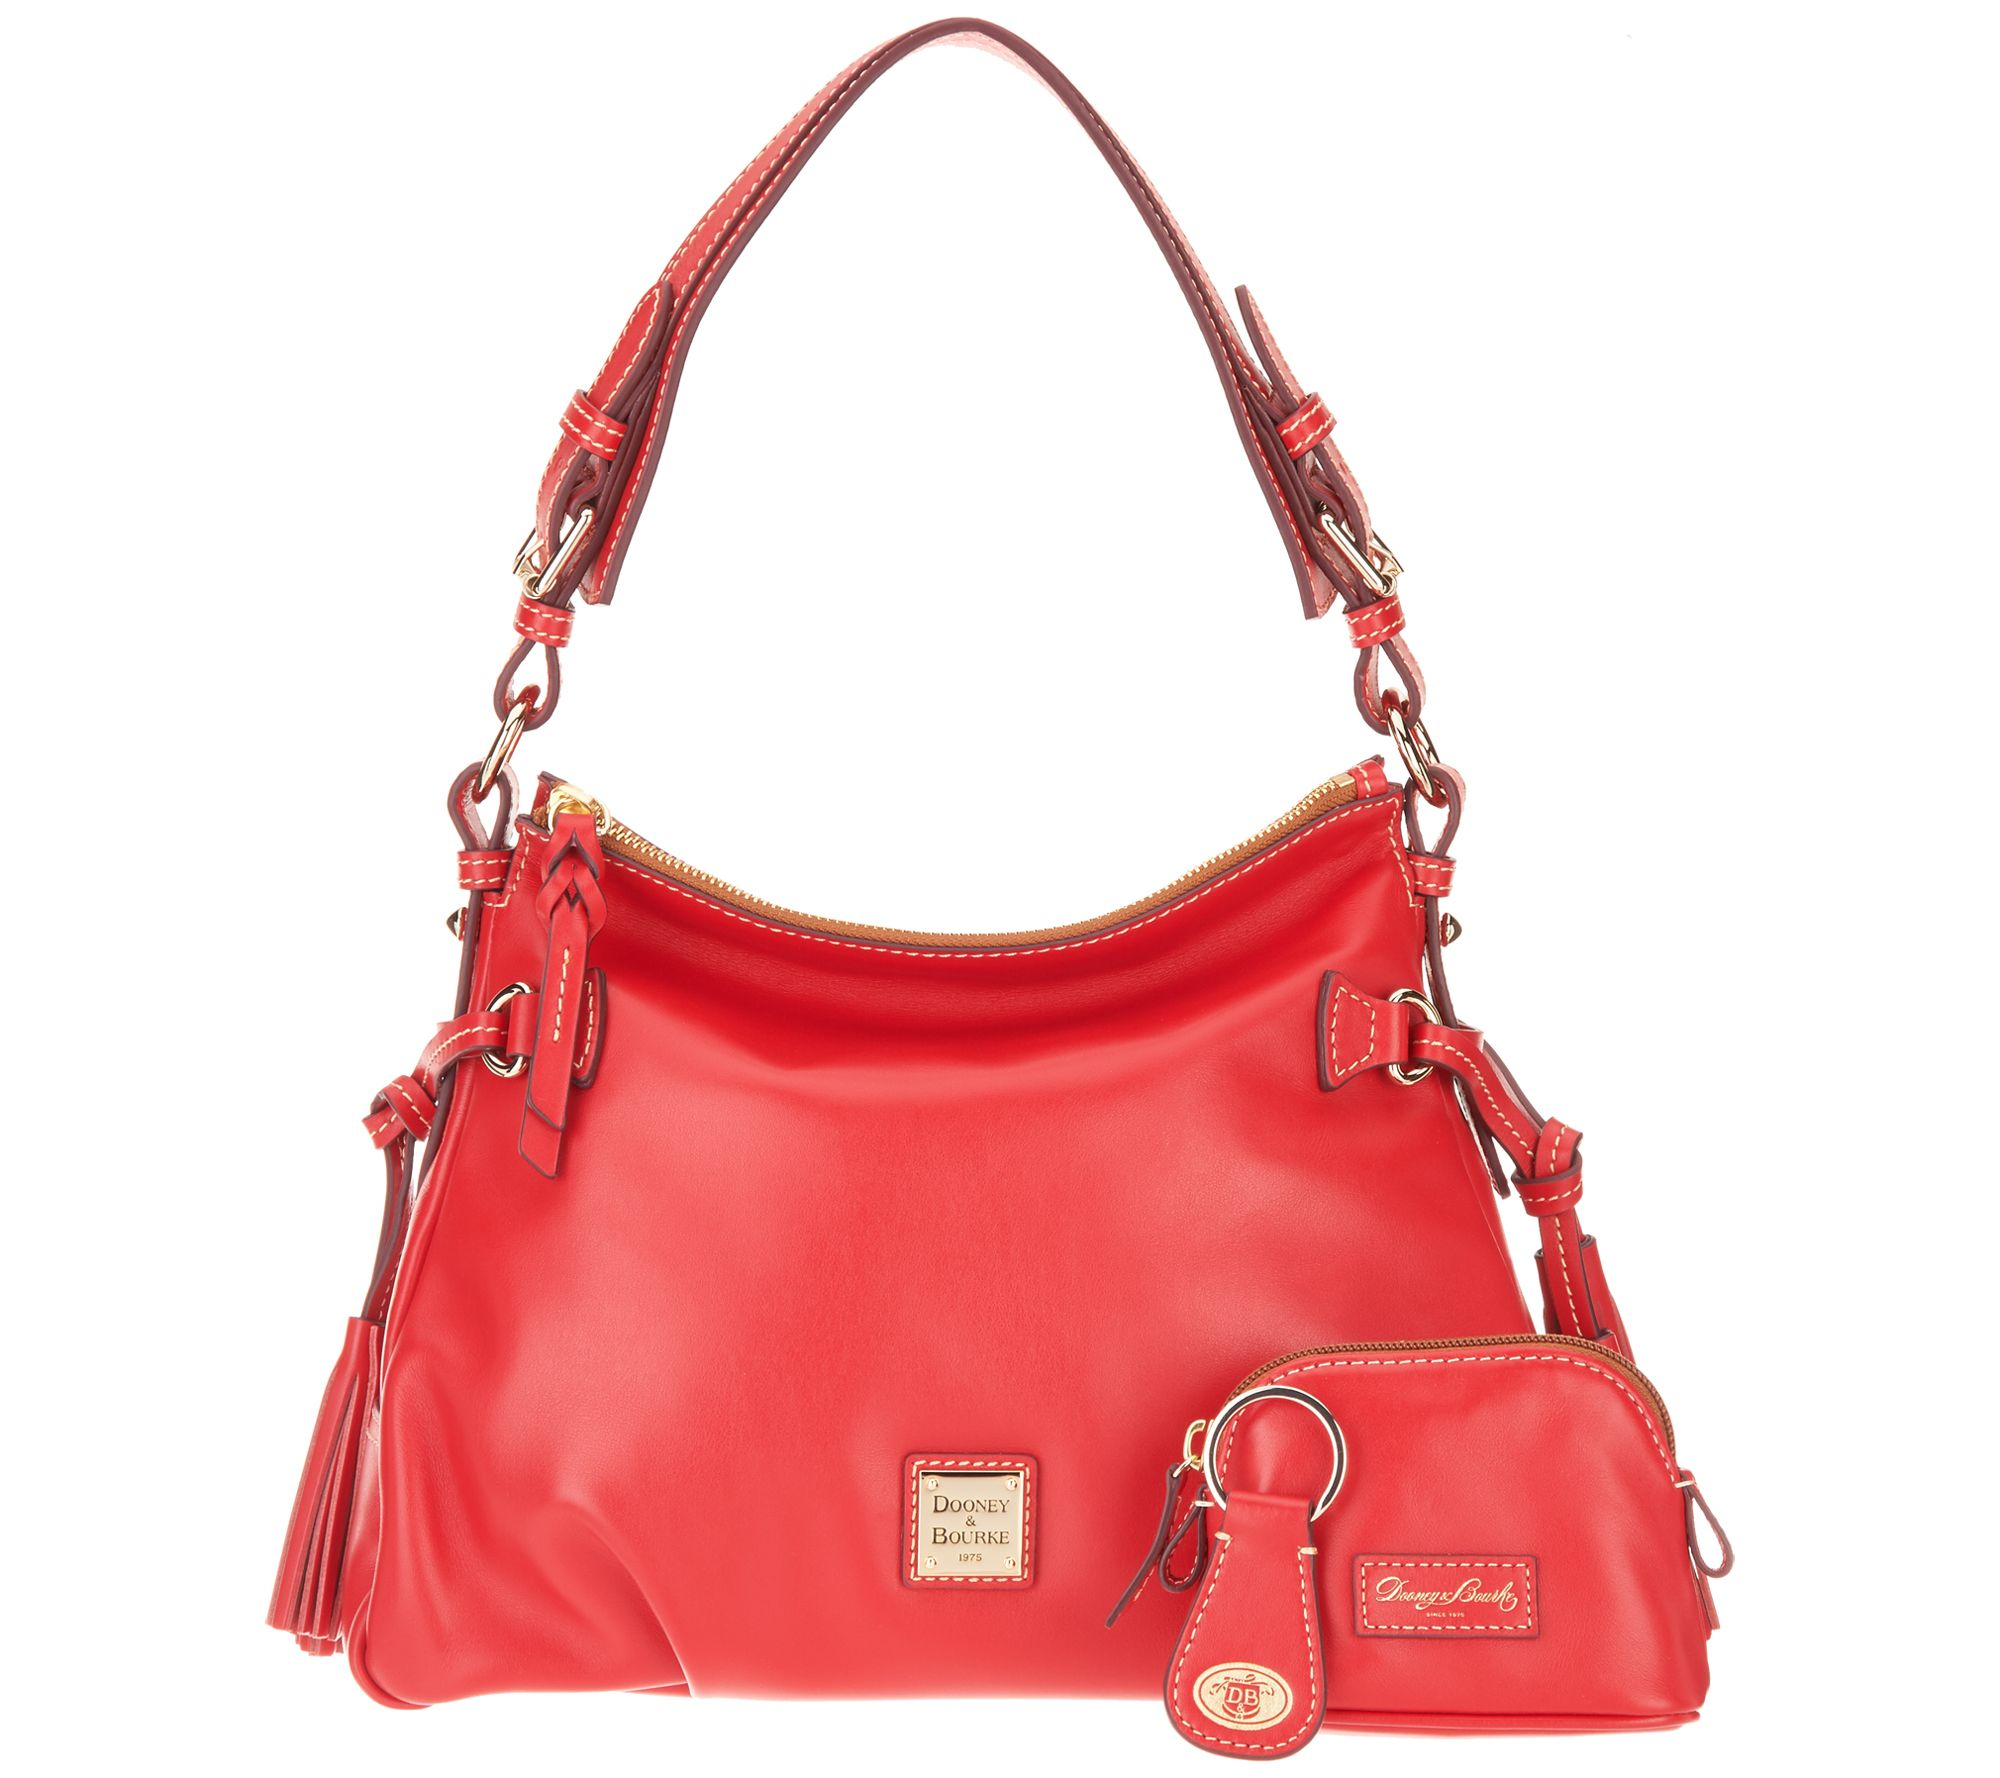 5ef49df563 Dooney   Bourke Smooth Leather Shoulder Bag w  Accessories- Teagan - Page 1  — QVC.com